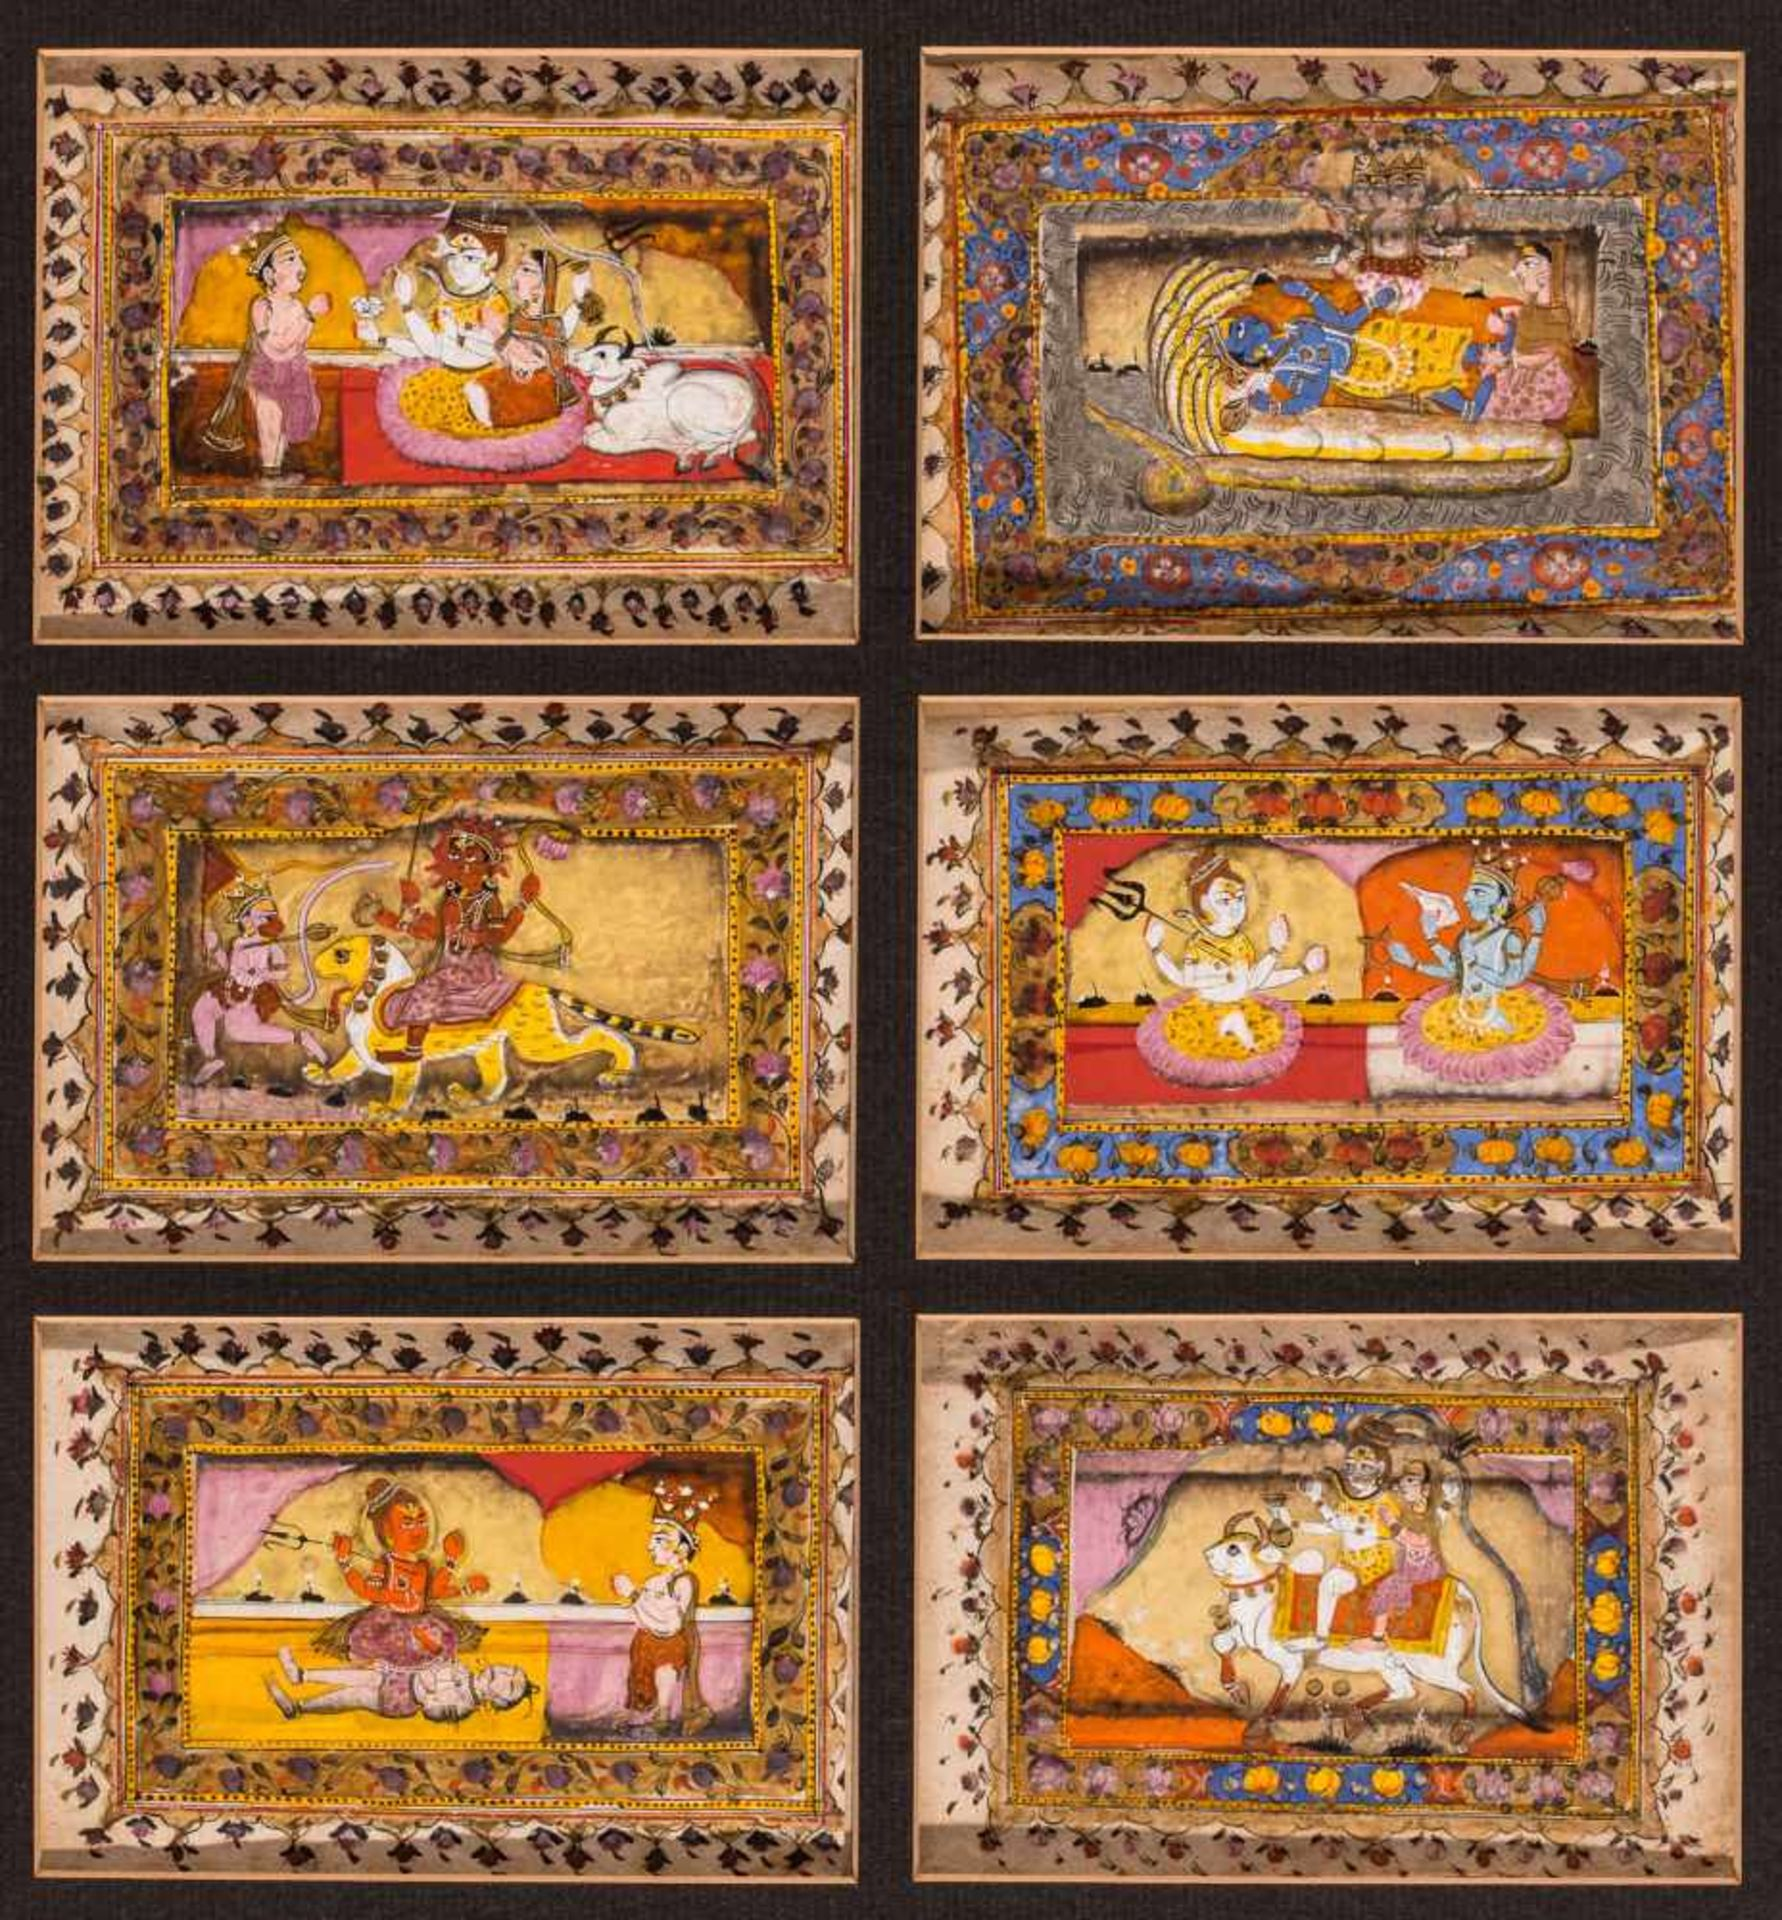 A GROUP OF 6 MINIATURE PAINTINGS - 19th CENTURYMiniature painting with colors and gold on